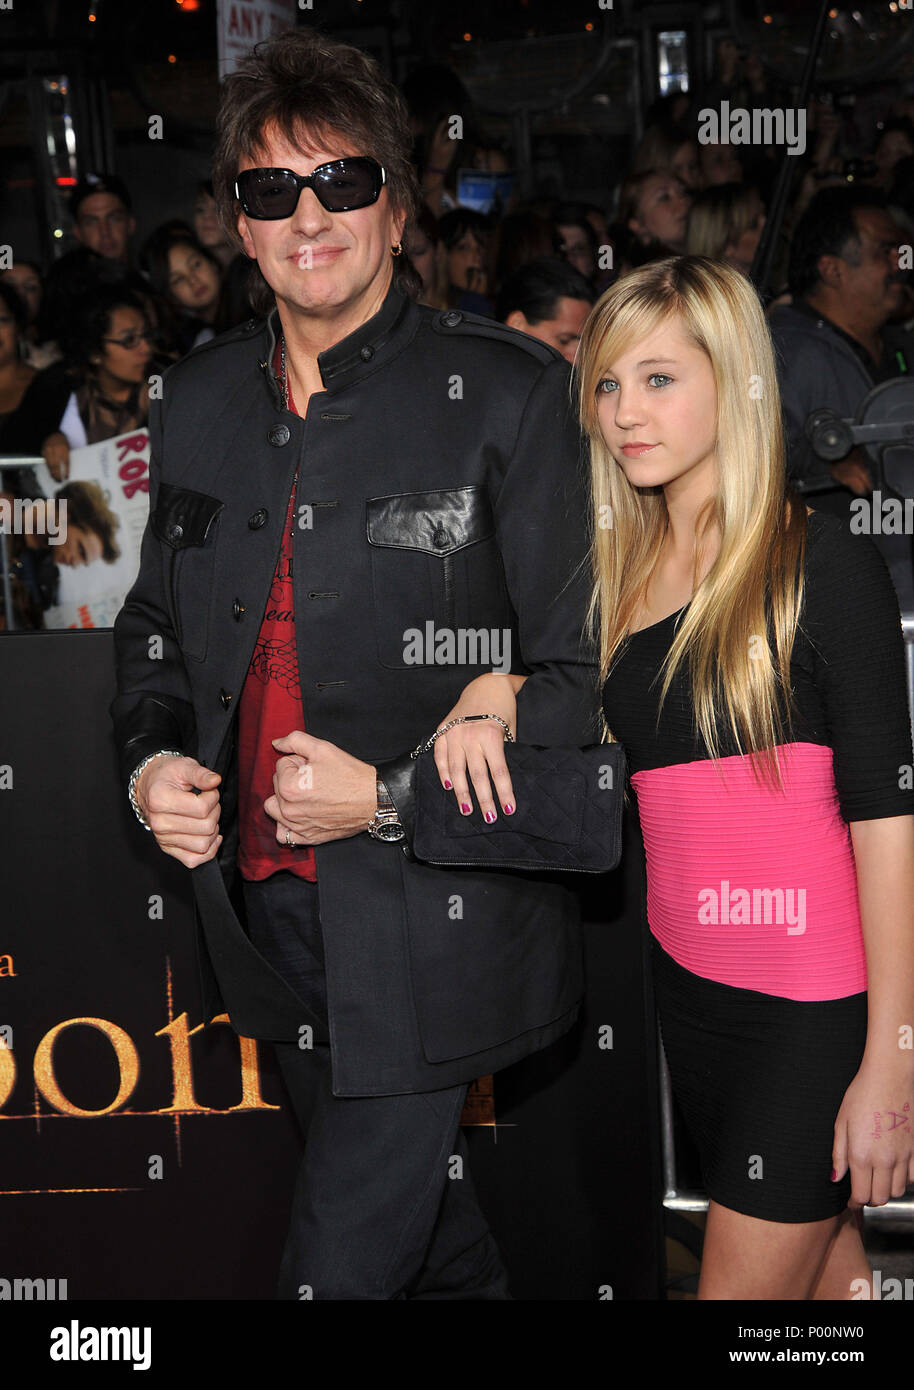 Richie Sambora and daughter   - THE TWILIGHT SAGA NEW MOON Premiere at the Westwood Village Theatre In Los Angeles.SamboraRichie_daughter_170  Event in Hollywood Life - California, Red Carpet Event, USA, Film Industry, Celebrities, Photography, Bestof, Arts Culture and Entertainment, Celebrities fashion, Best of, Hollywood Life, Event in Hollywood Life - California, Red Carpet and backstage, Music celebrities, Topix, Couple, family ( husband and wife ) and kids- Children, brothers and sisters inquiry tsuni@Gamma-USA.com, Credit Tsuni / USA, 2006 to 2009 - Stock Image